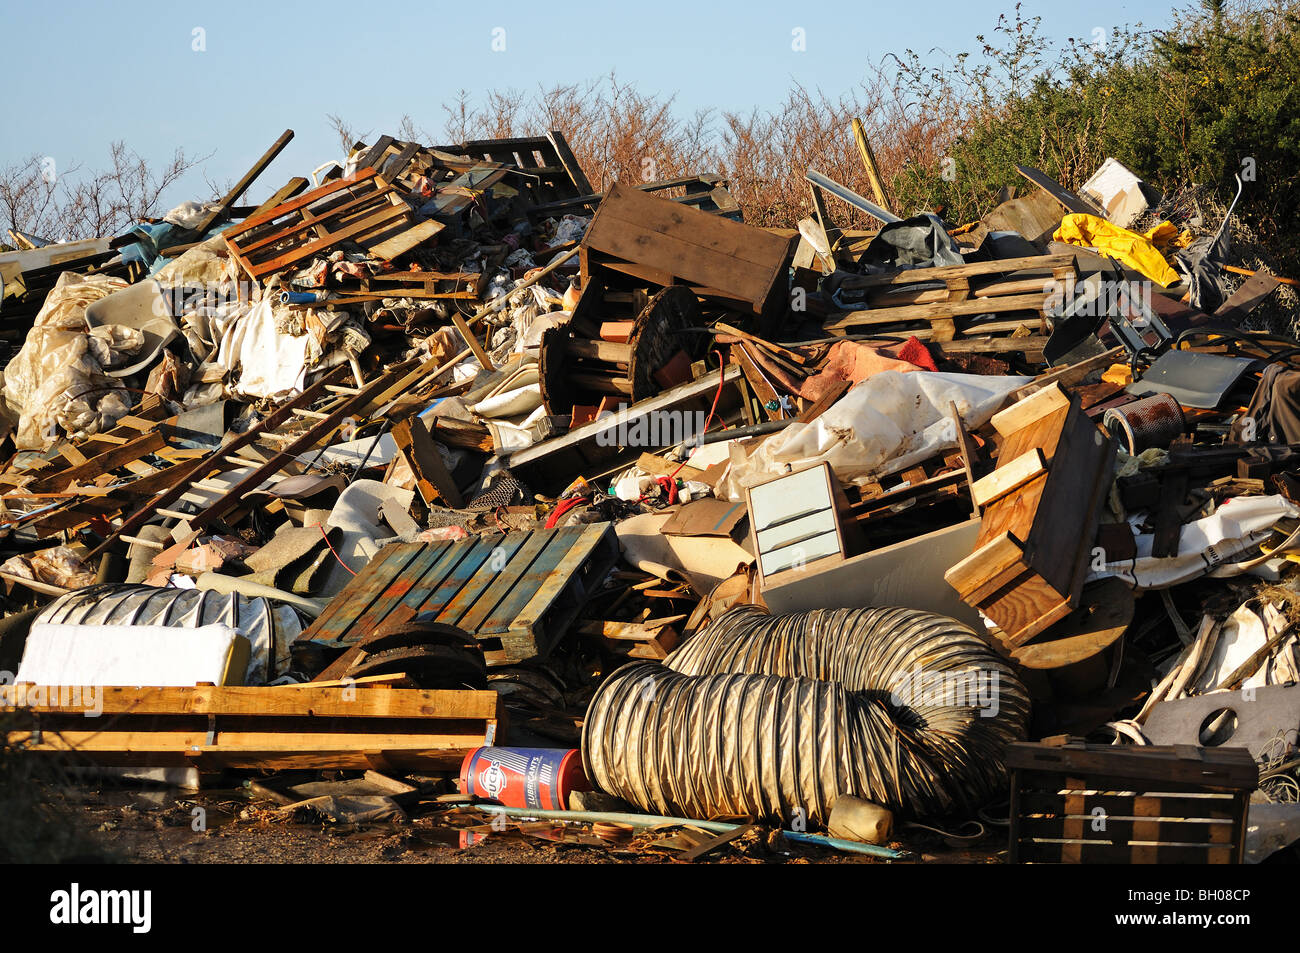 a rubbish dump in redruth, cornwall, uk - Stock Image